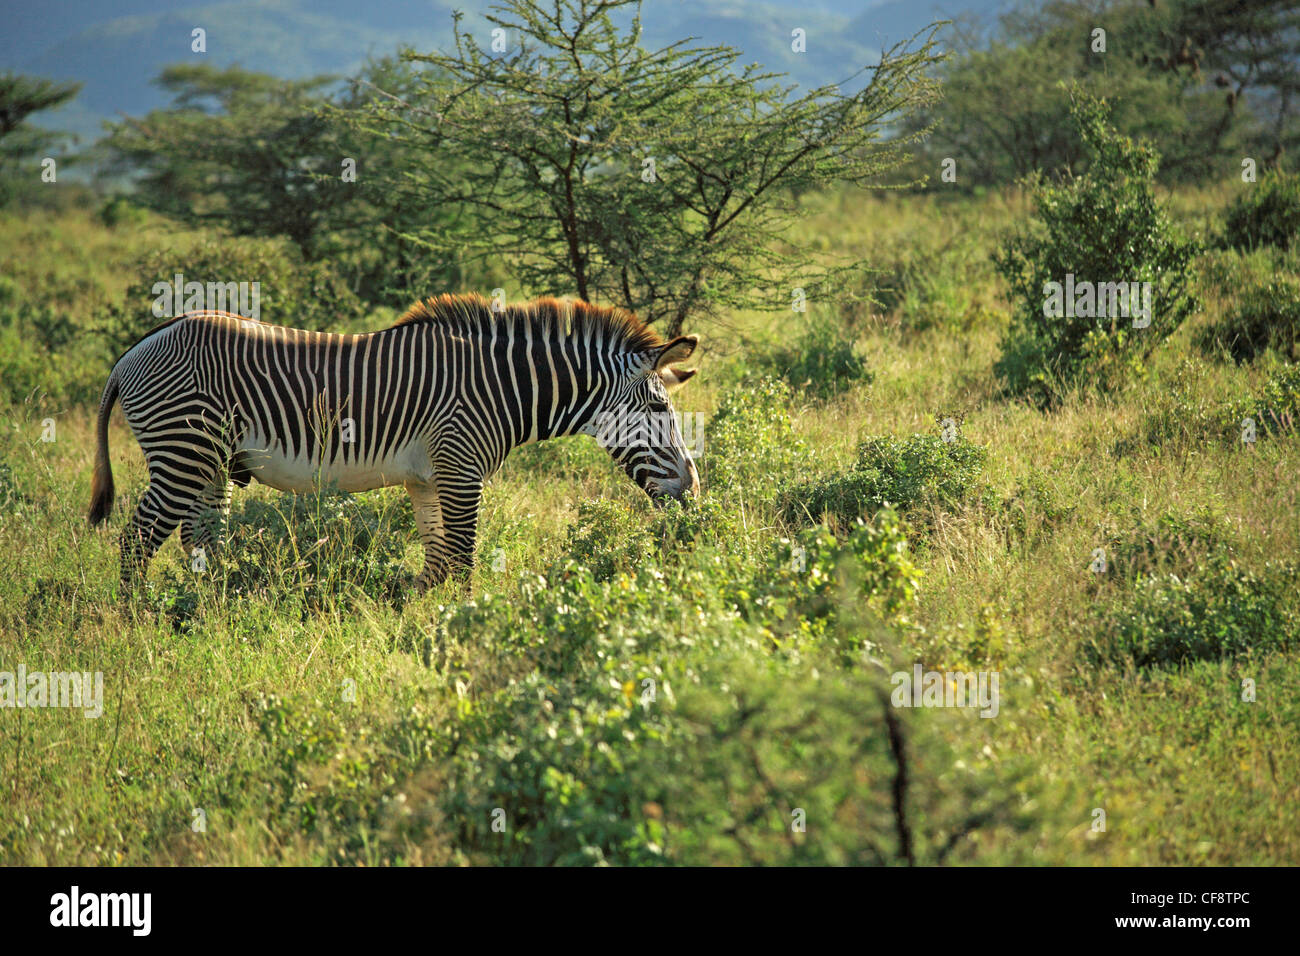 The African Zebra is also known as Grevy's Zebra or the Imperial Zebra. They roam the grasslands of the Rift Valley. Stock Photo